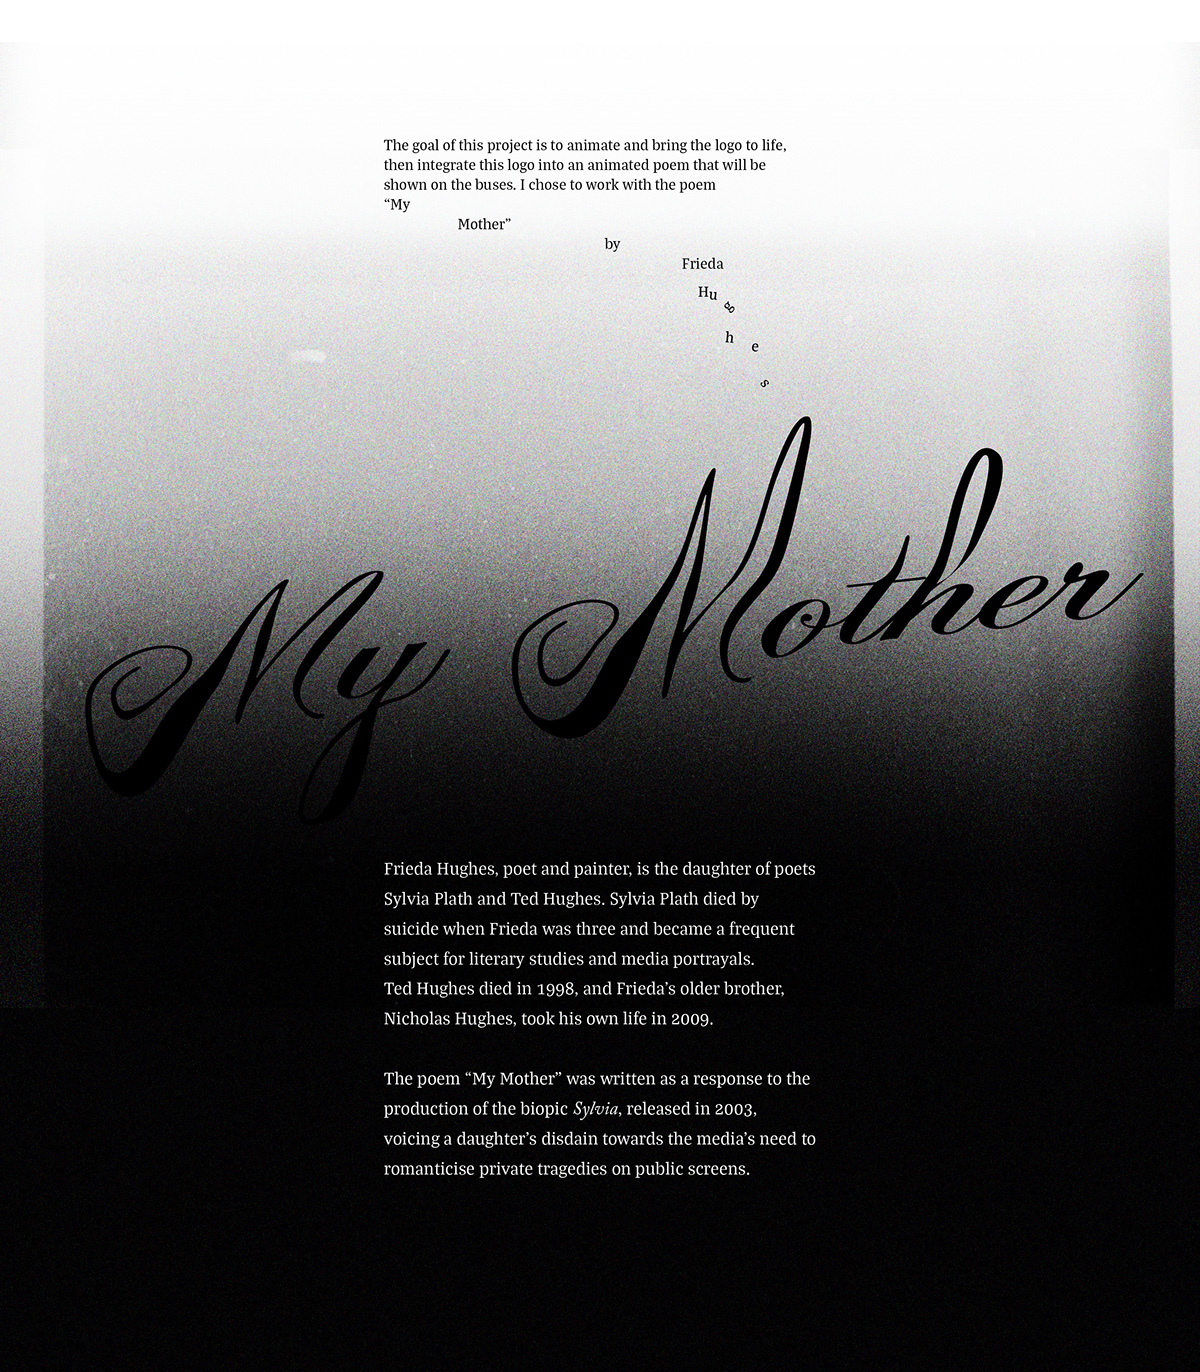 poetry in motion: my Mother on RISD Portfolios